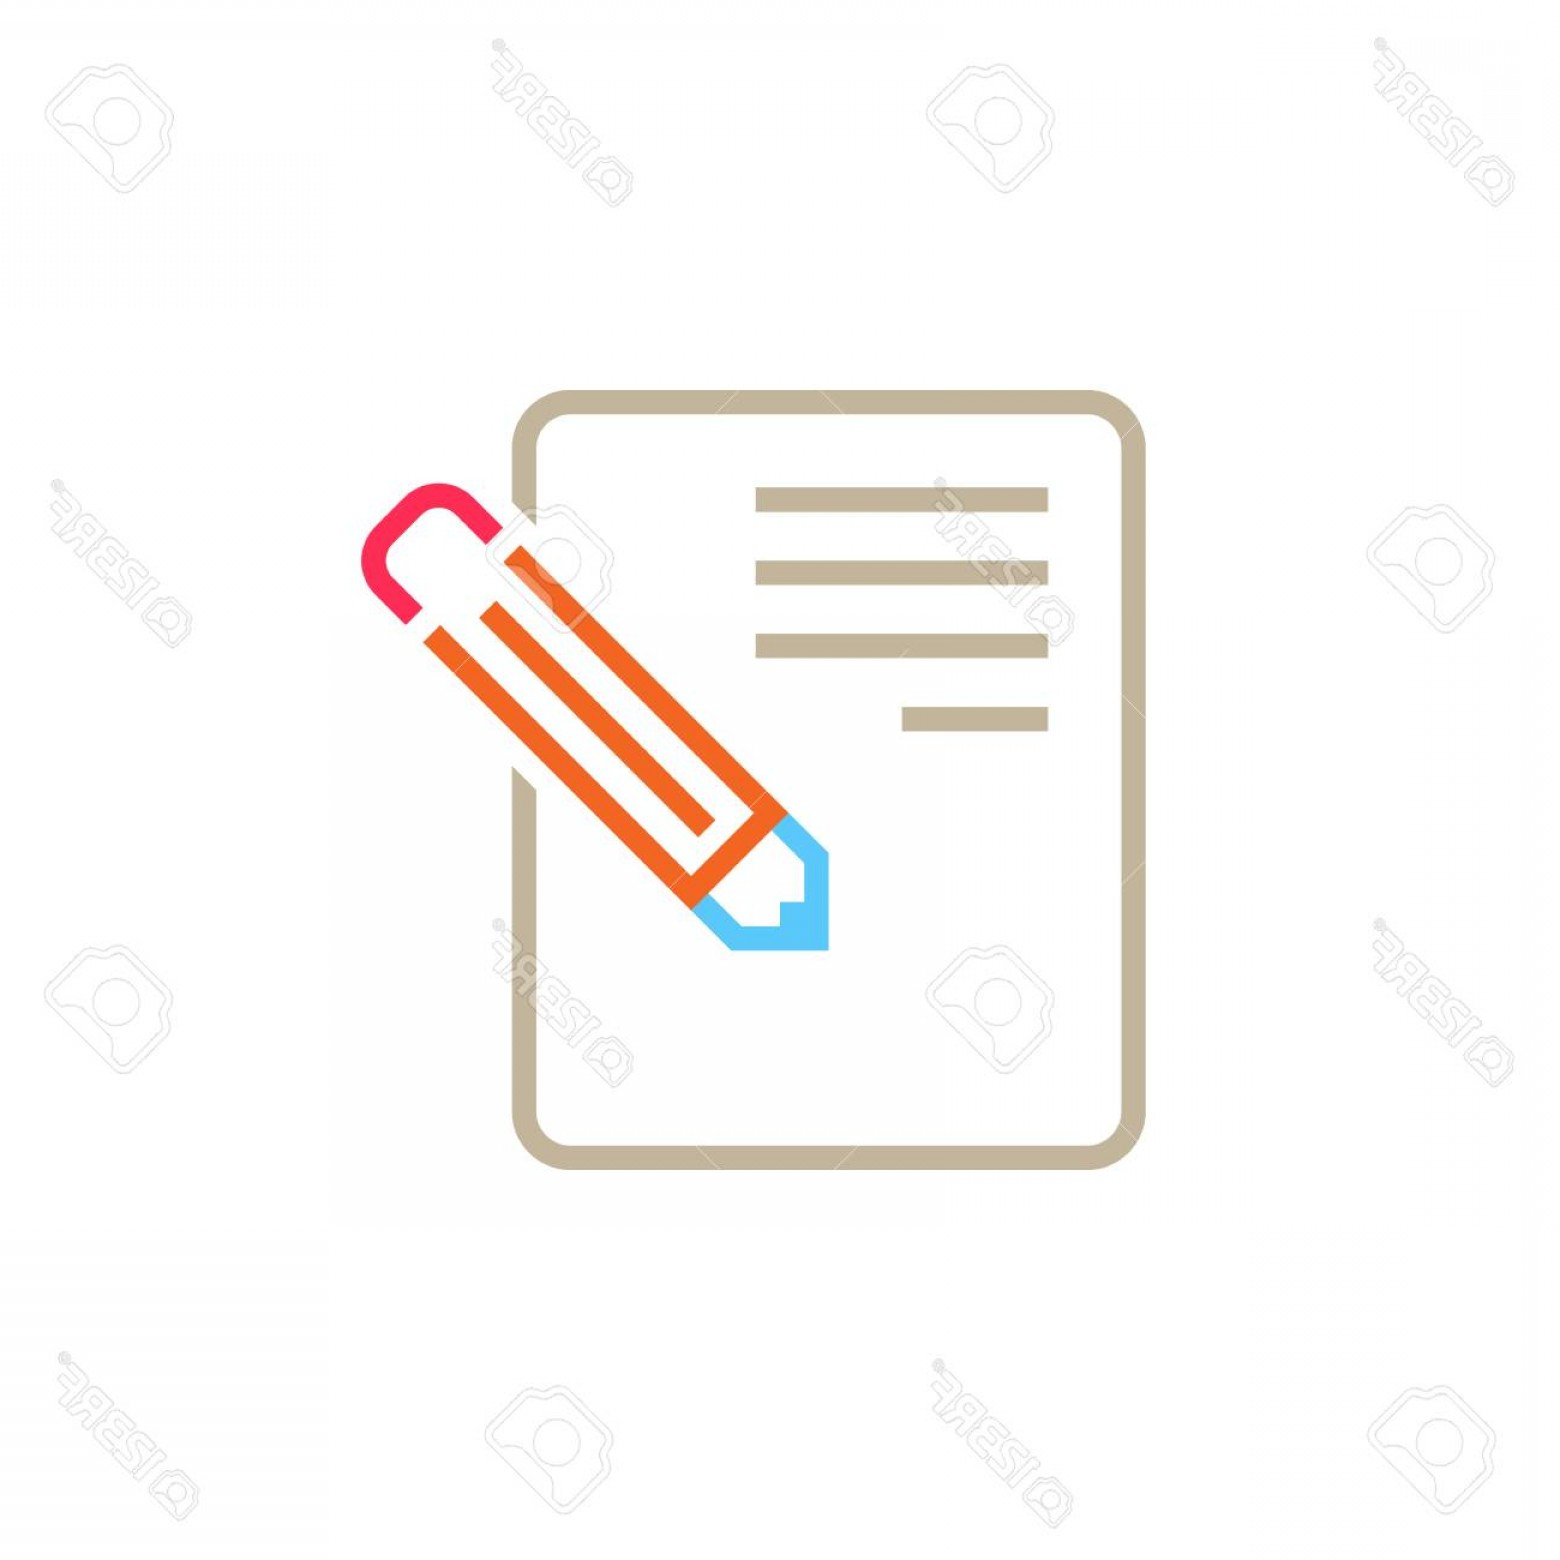 Vector Application Form: Photostock Vector Application Form Line Icon Edit Outline Vector Logo Illustration Linear Pictogram Isolated On White